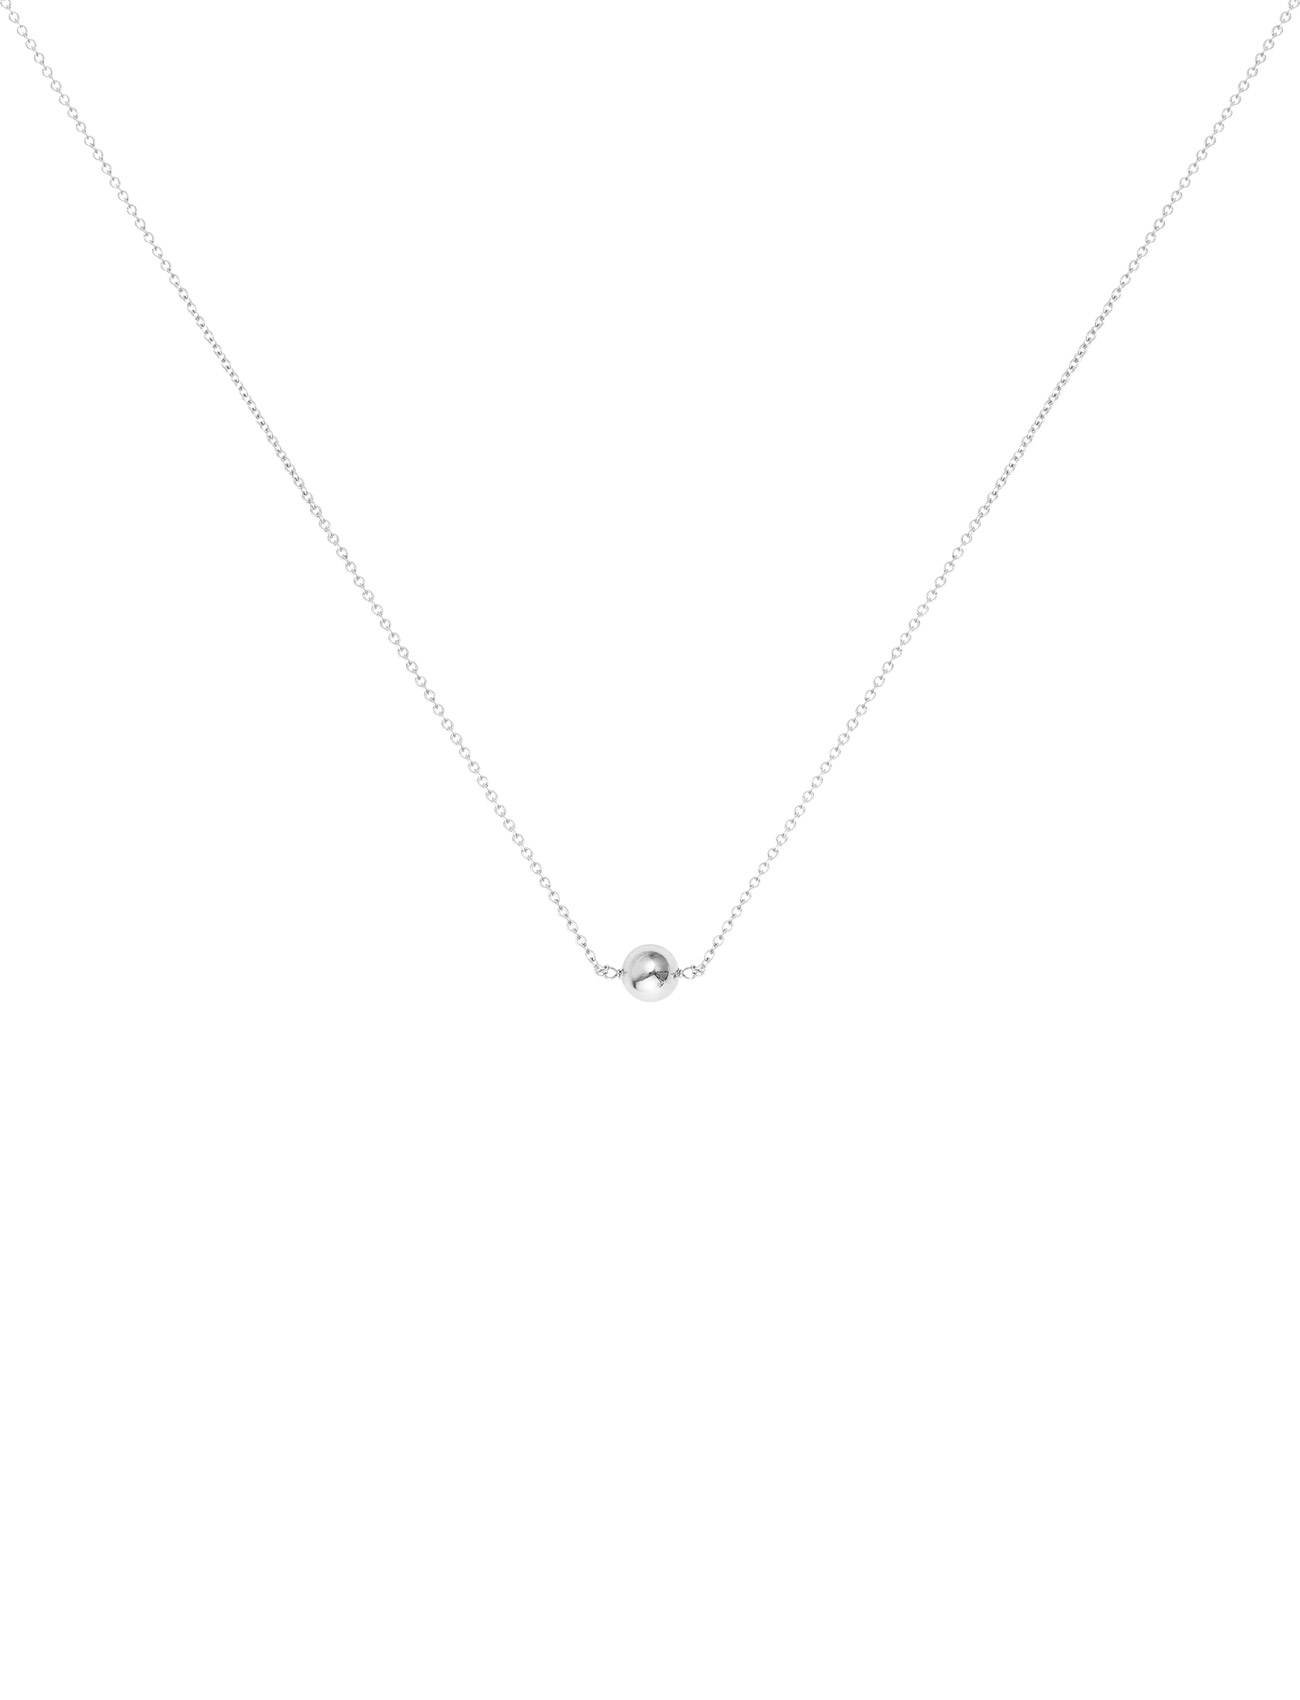 SOPHIE by SOPHIE Hanna Necklace